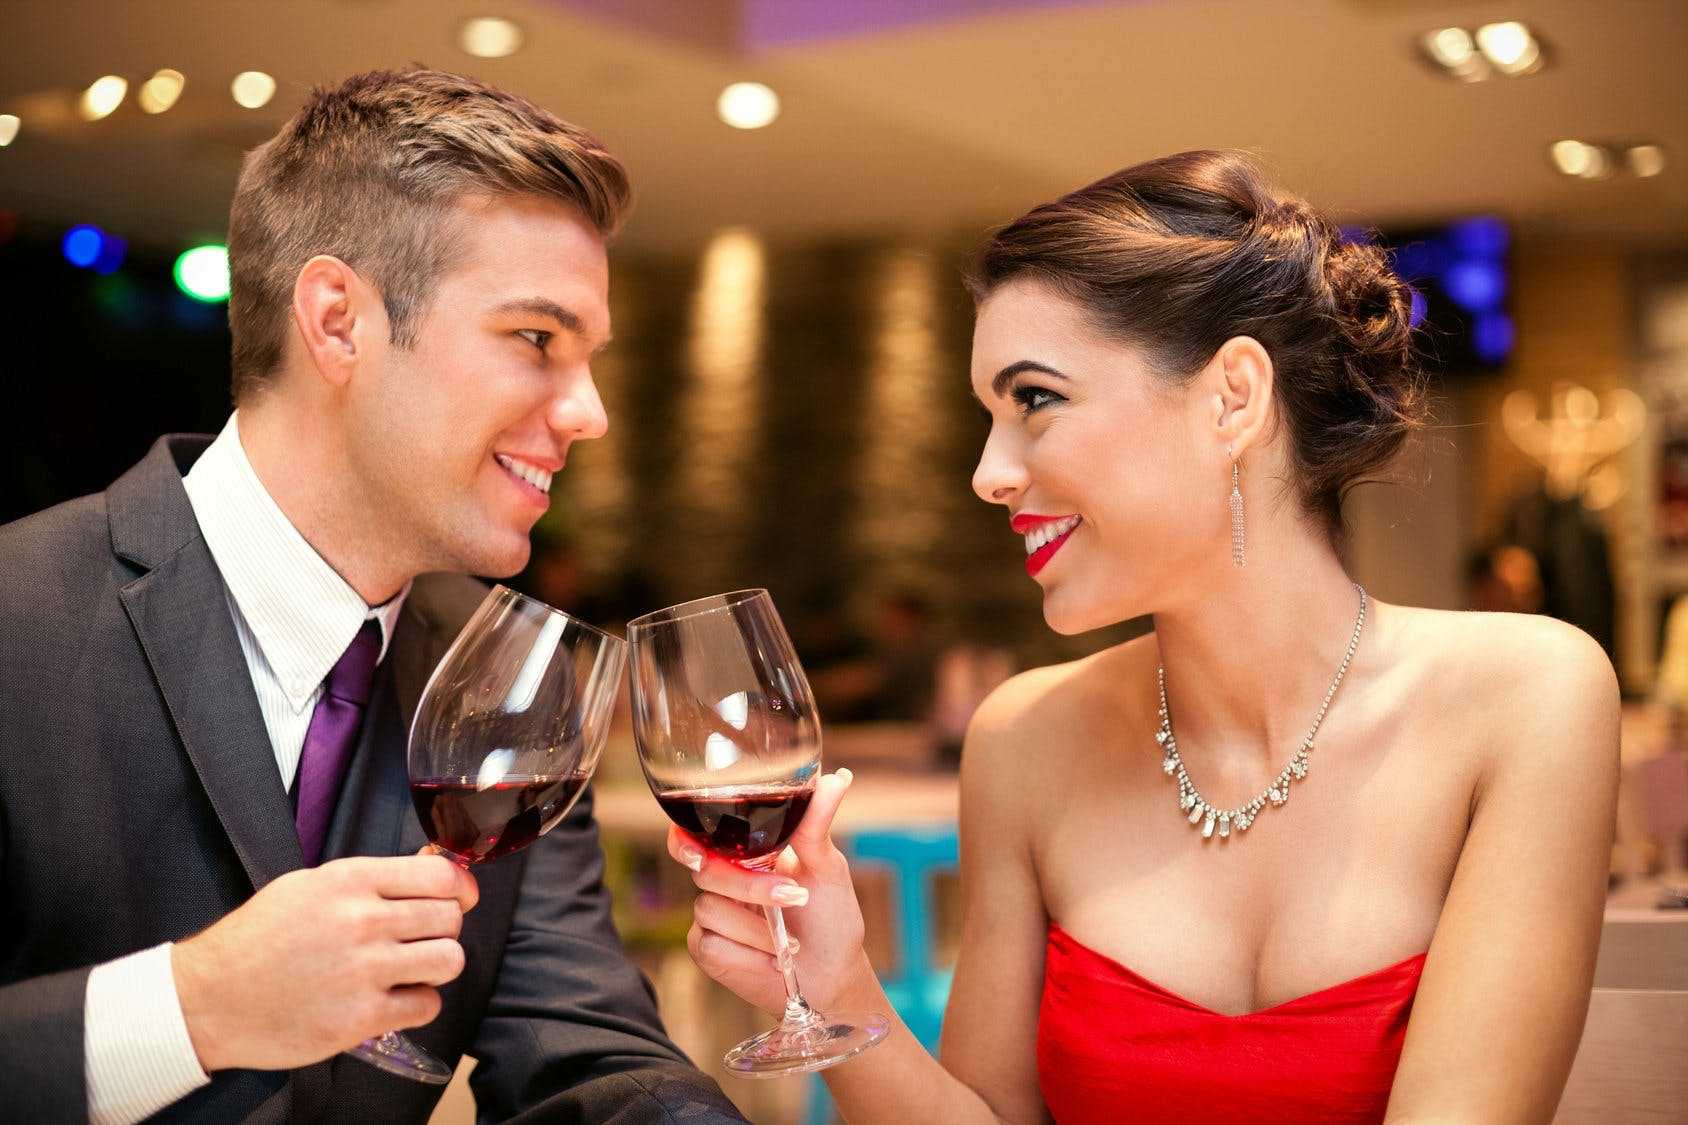 4 Tips for a Date First